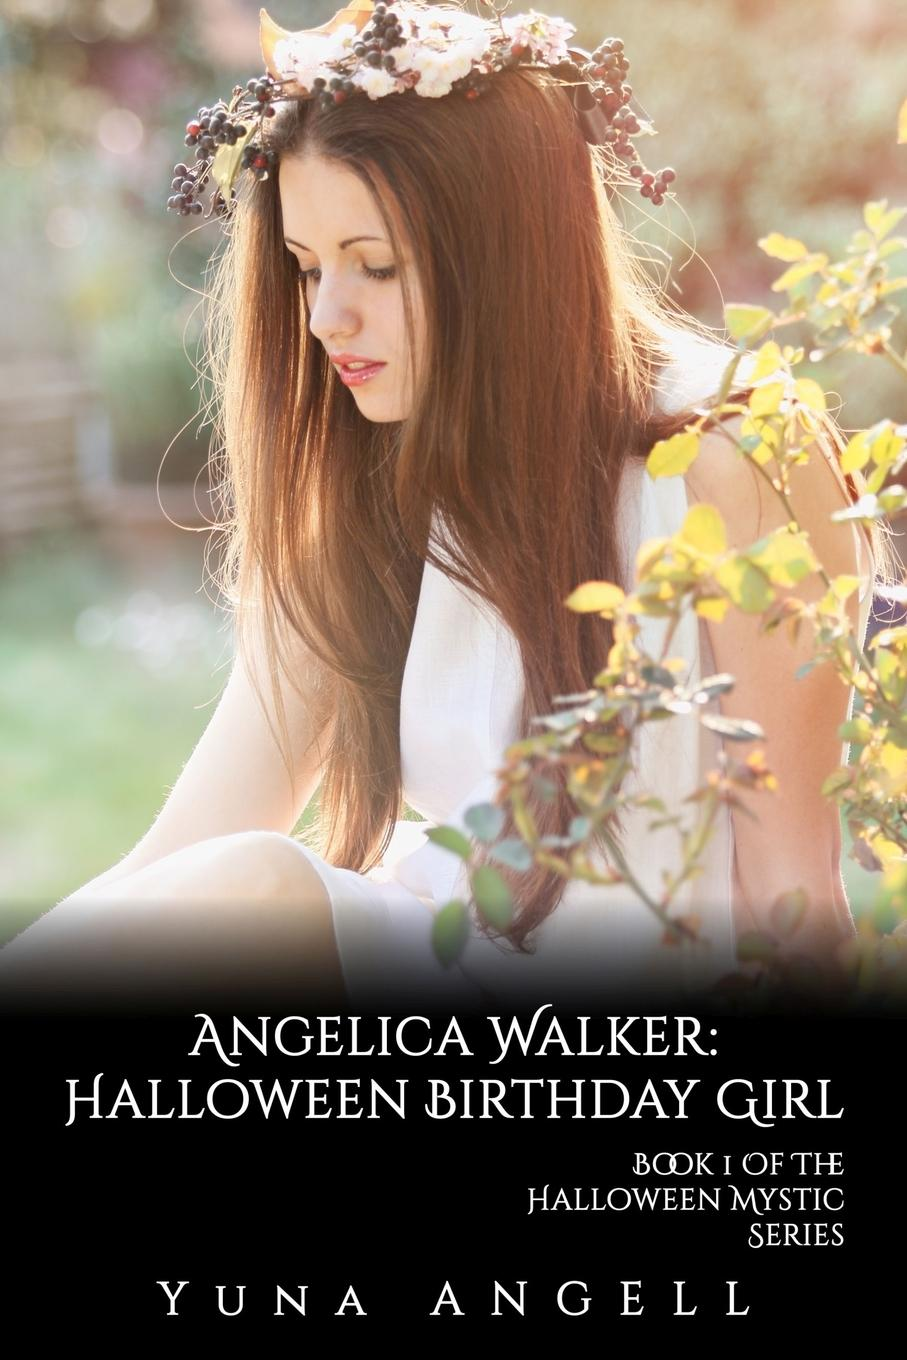 Yuna Angell Angelica Walker. Halloween Birthday Girl (Book 1 of The Halloween Mystic Series)